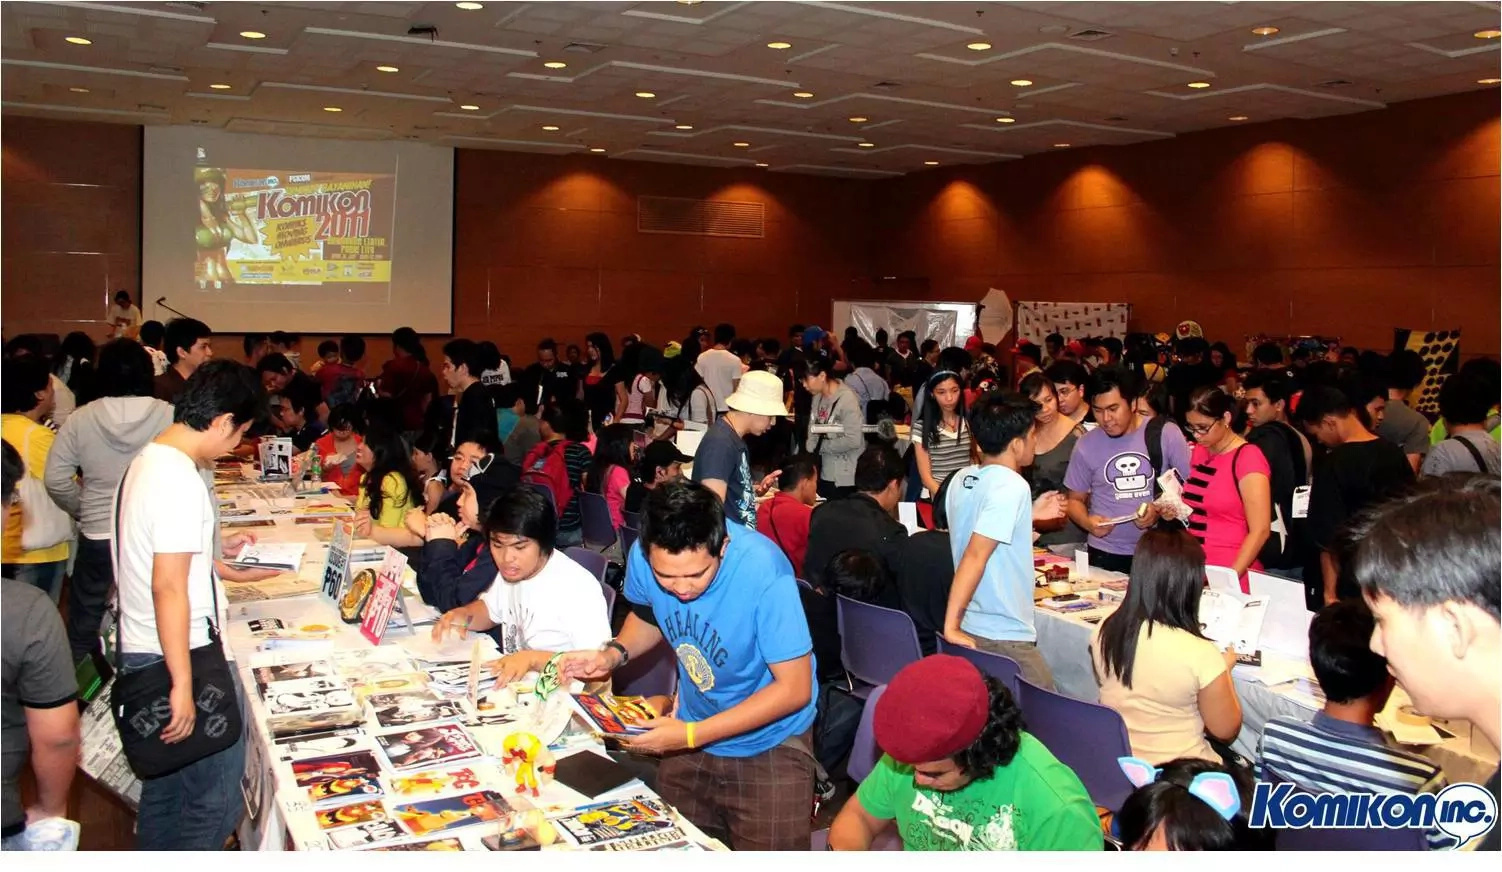 Summer Komikon is Back!